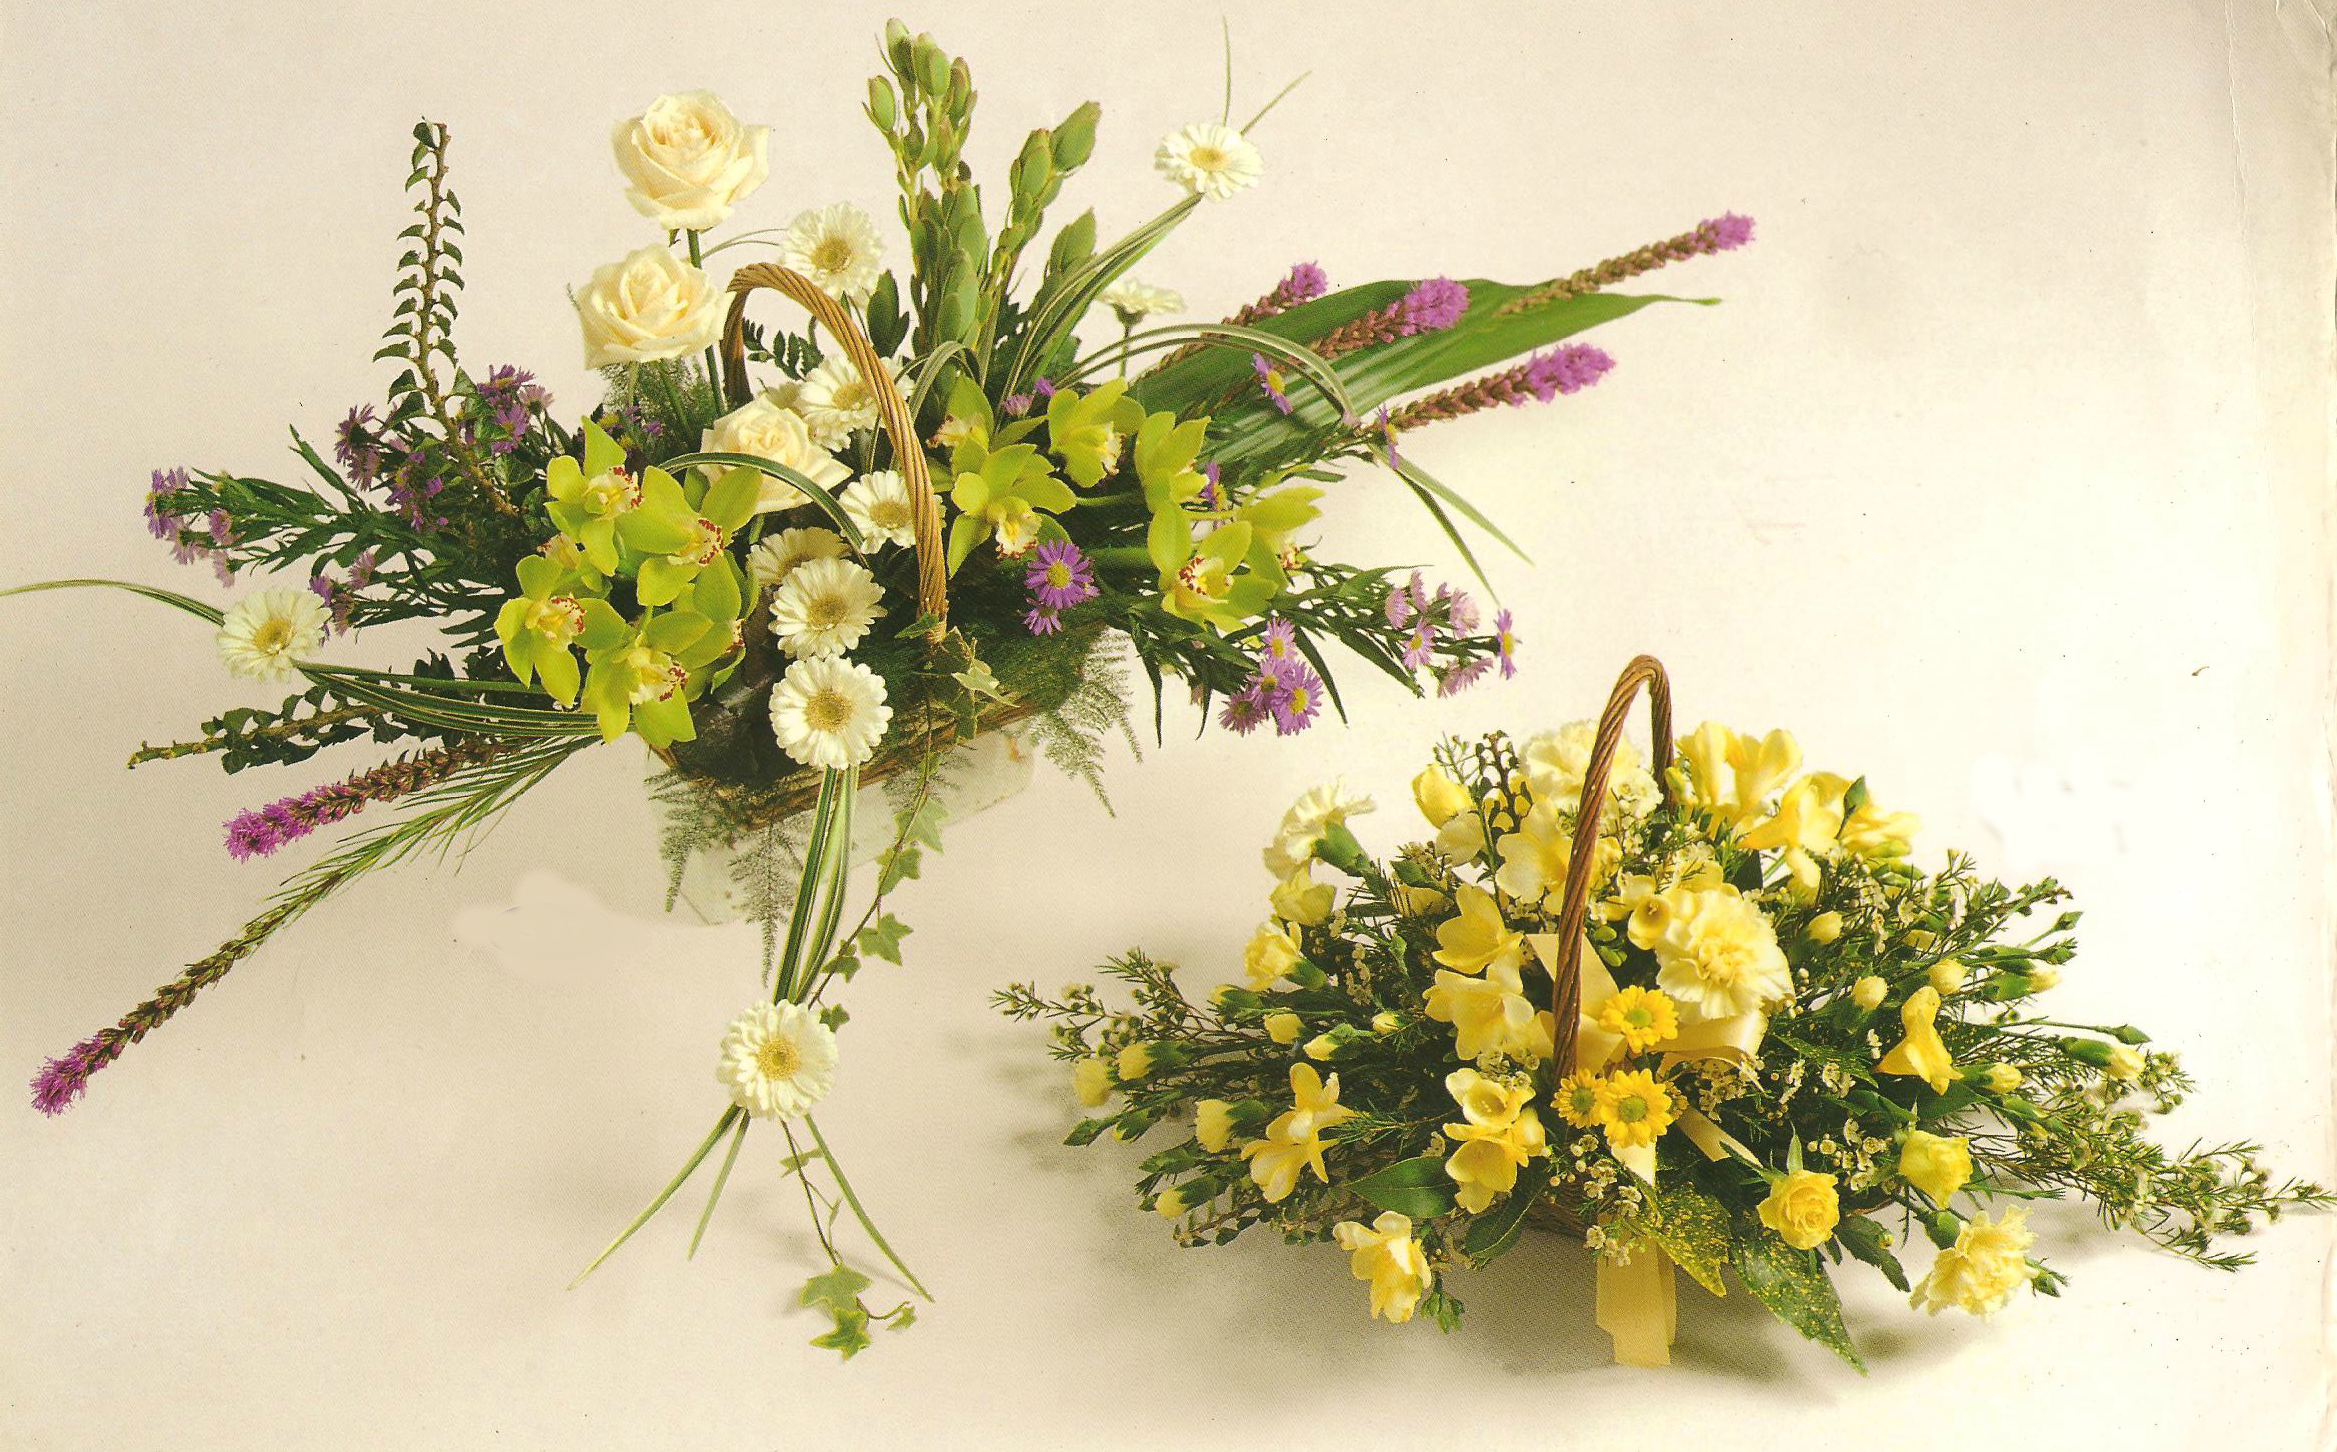 Funeral Baskets starting from £30 going up in £5s A27 A28